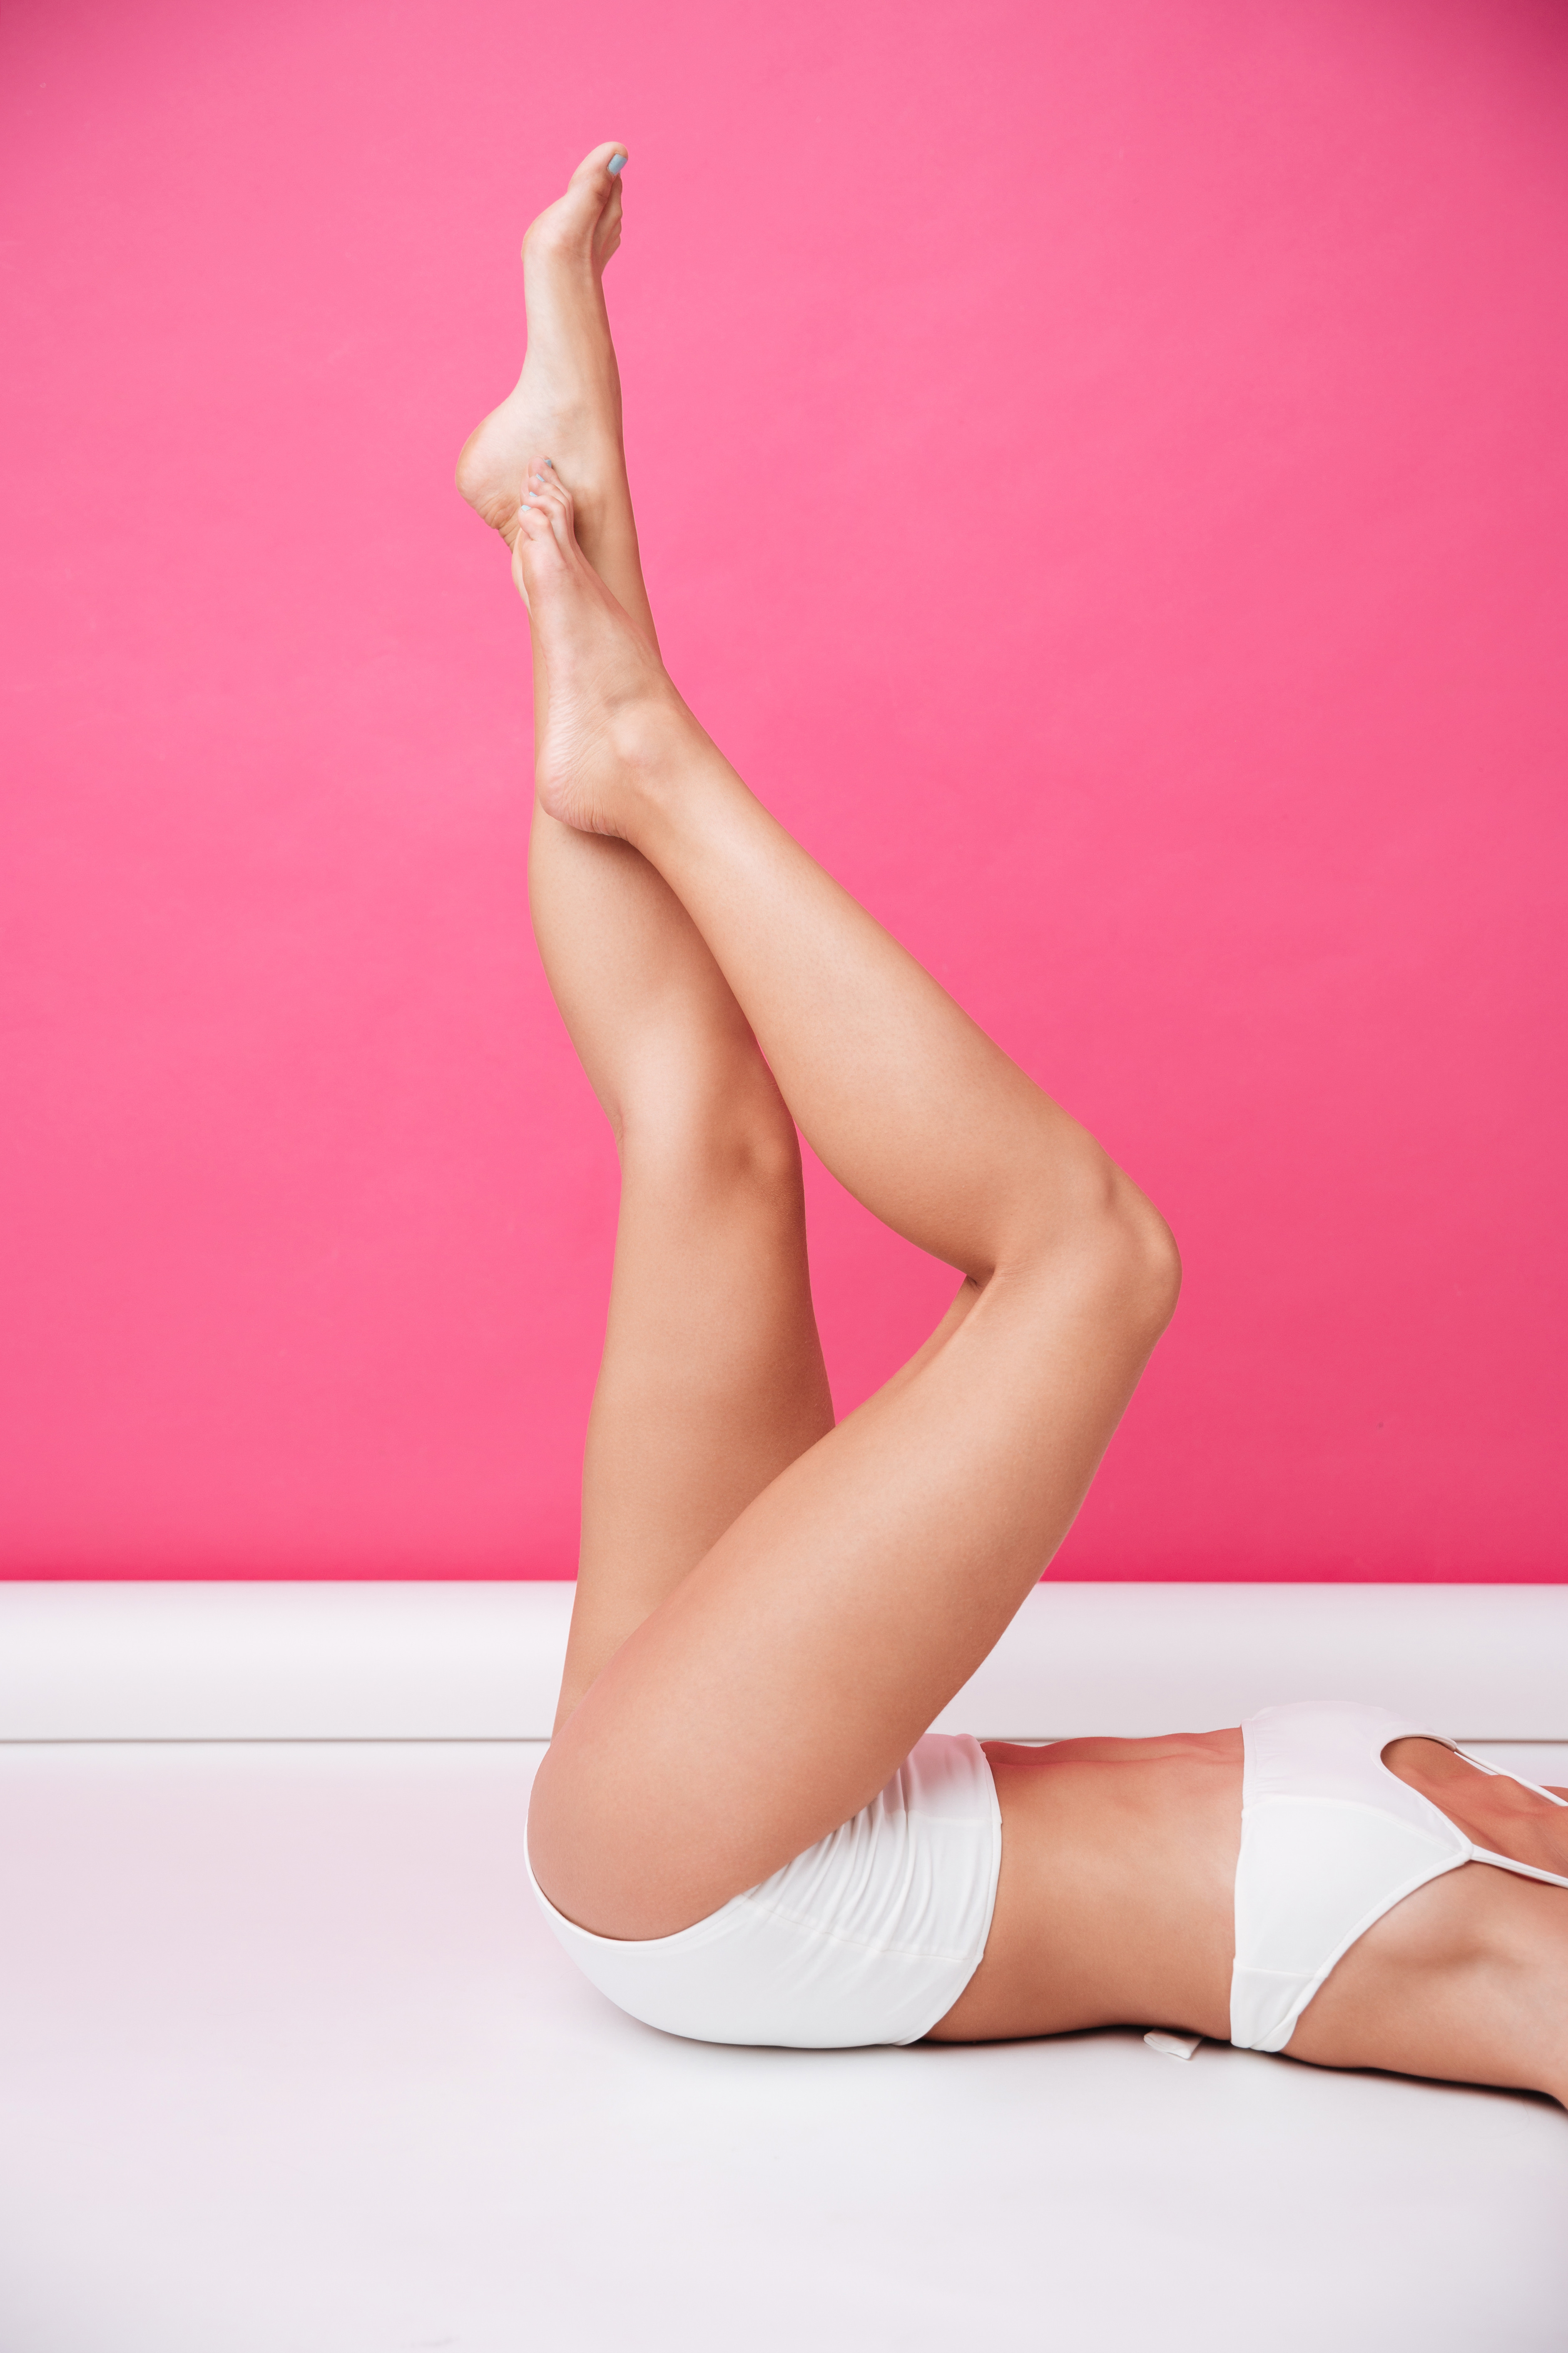 Large Areas Laser Hair Removal